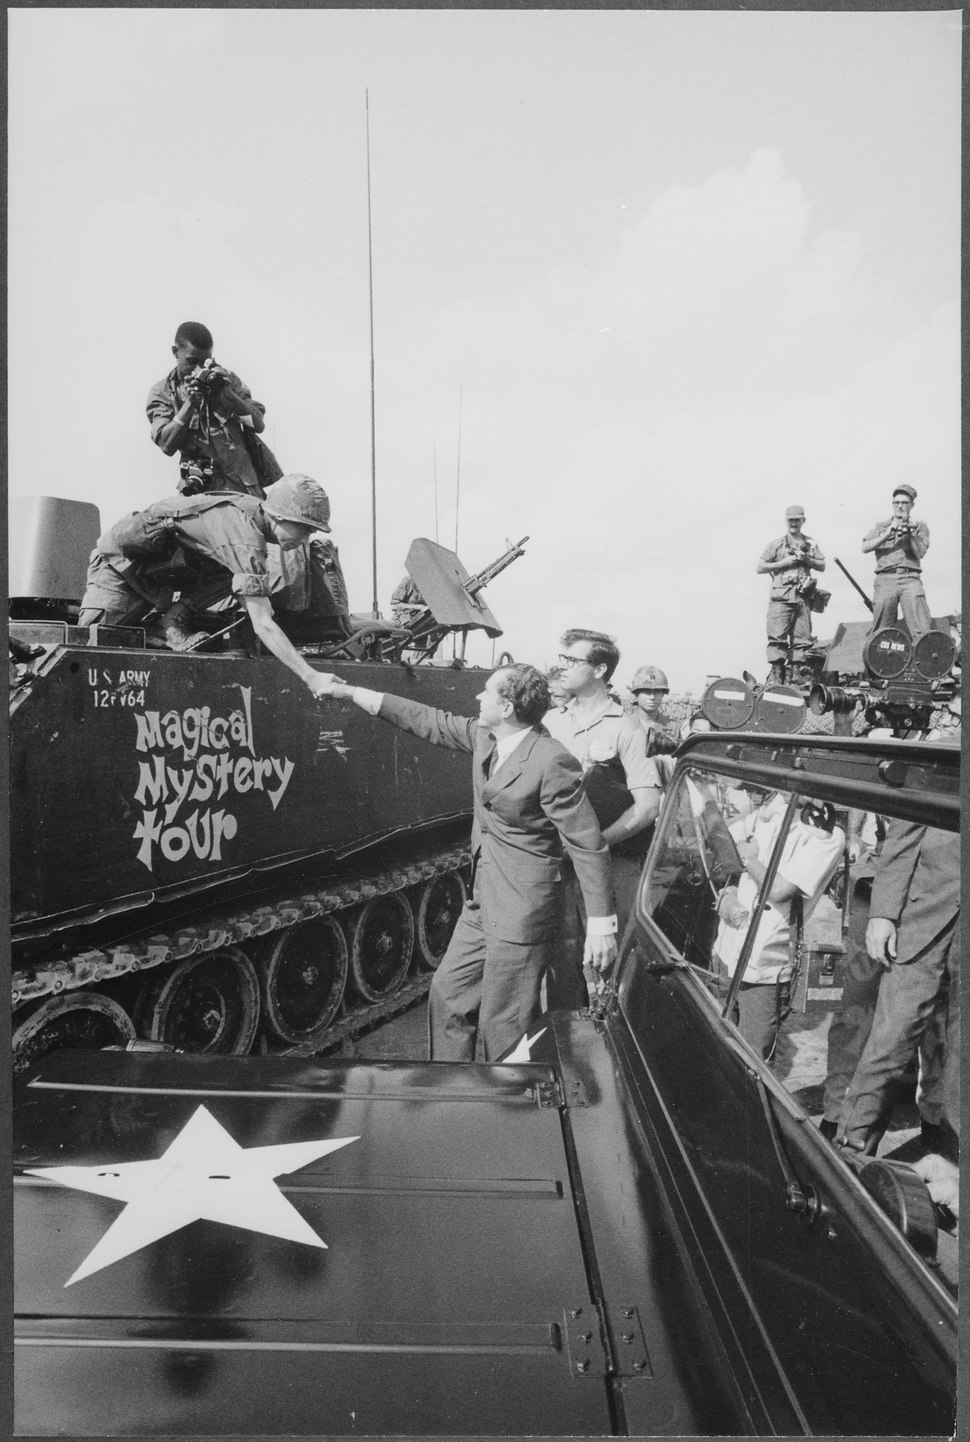 Richard M. Nixon shaking hands with armed forces in Vietnam - NARA - 194650